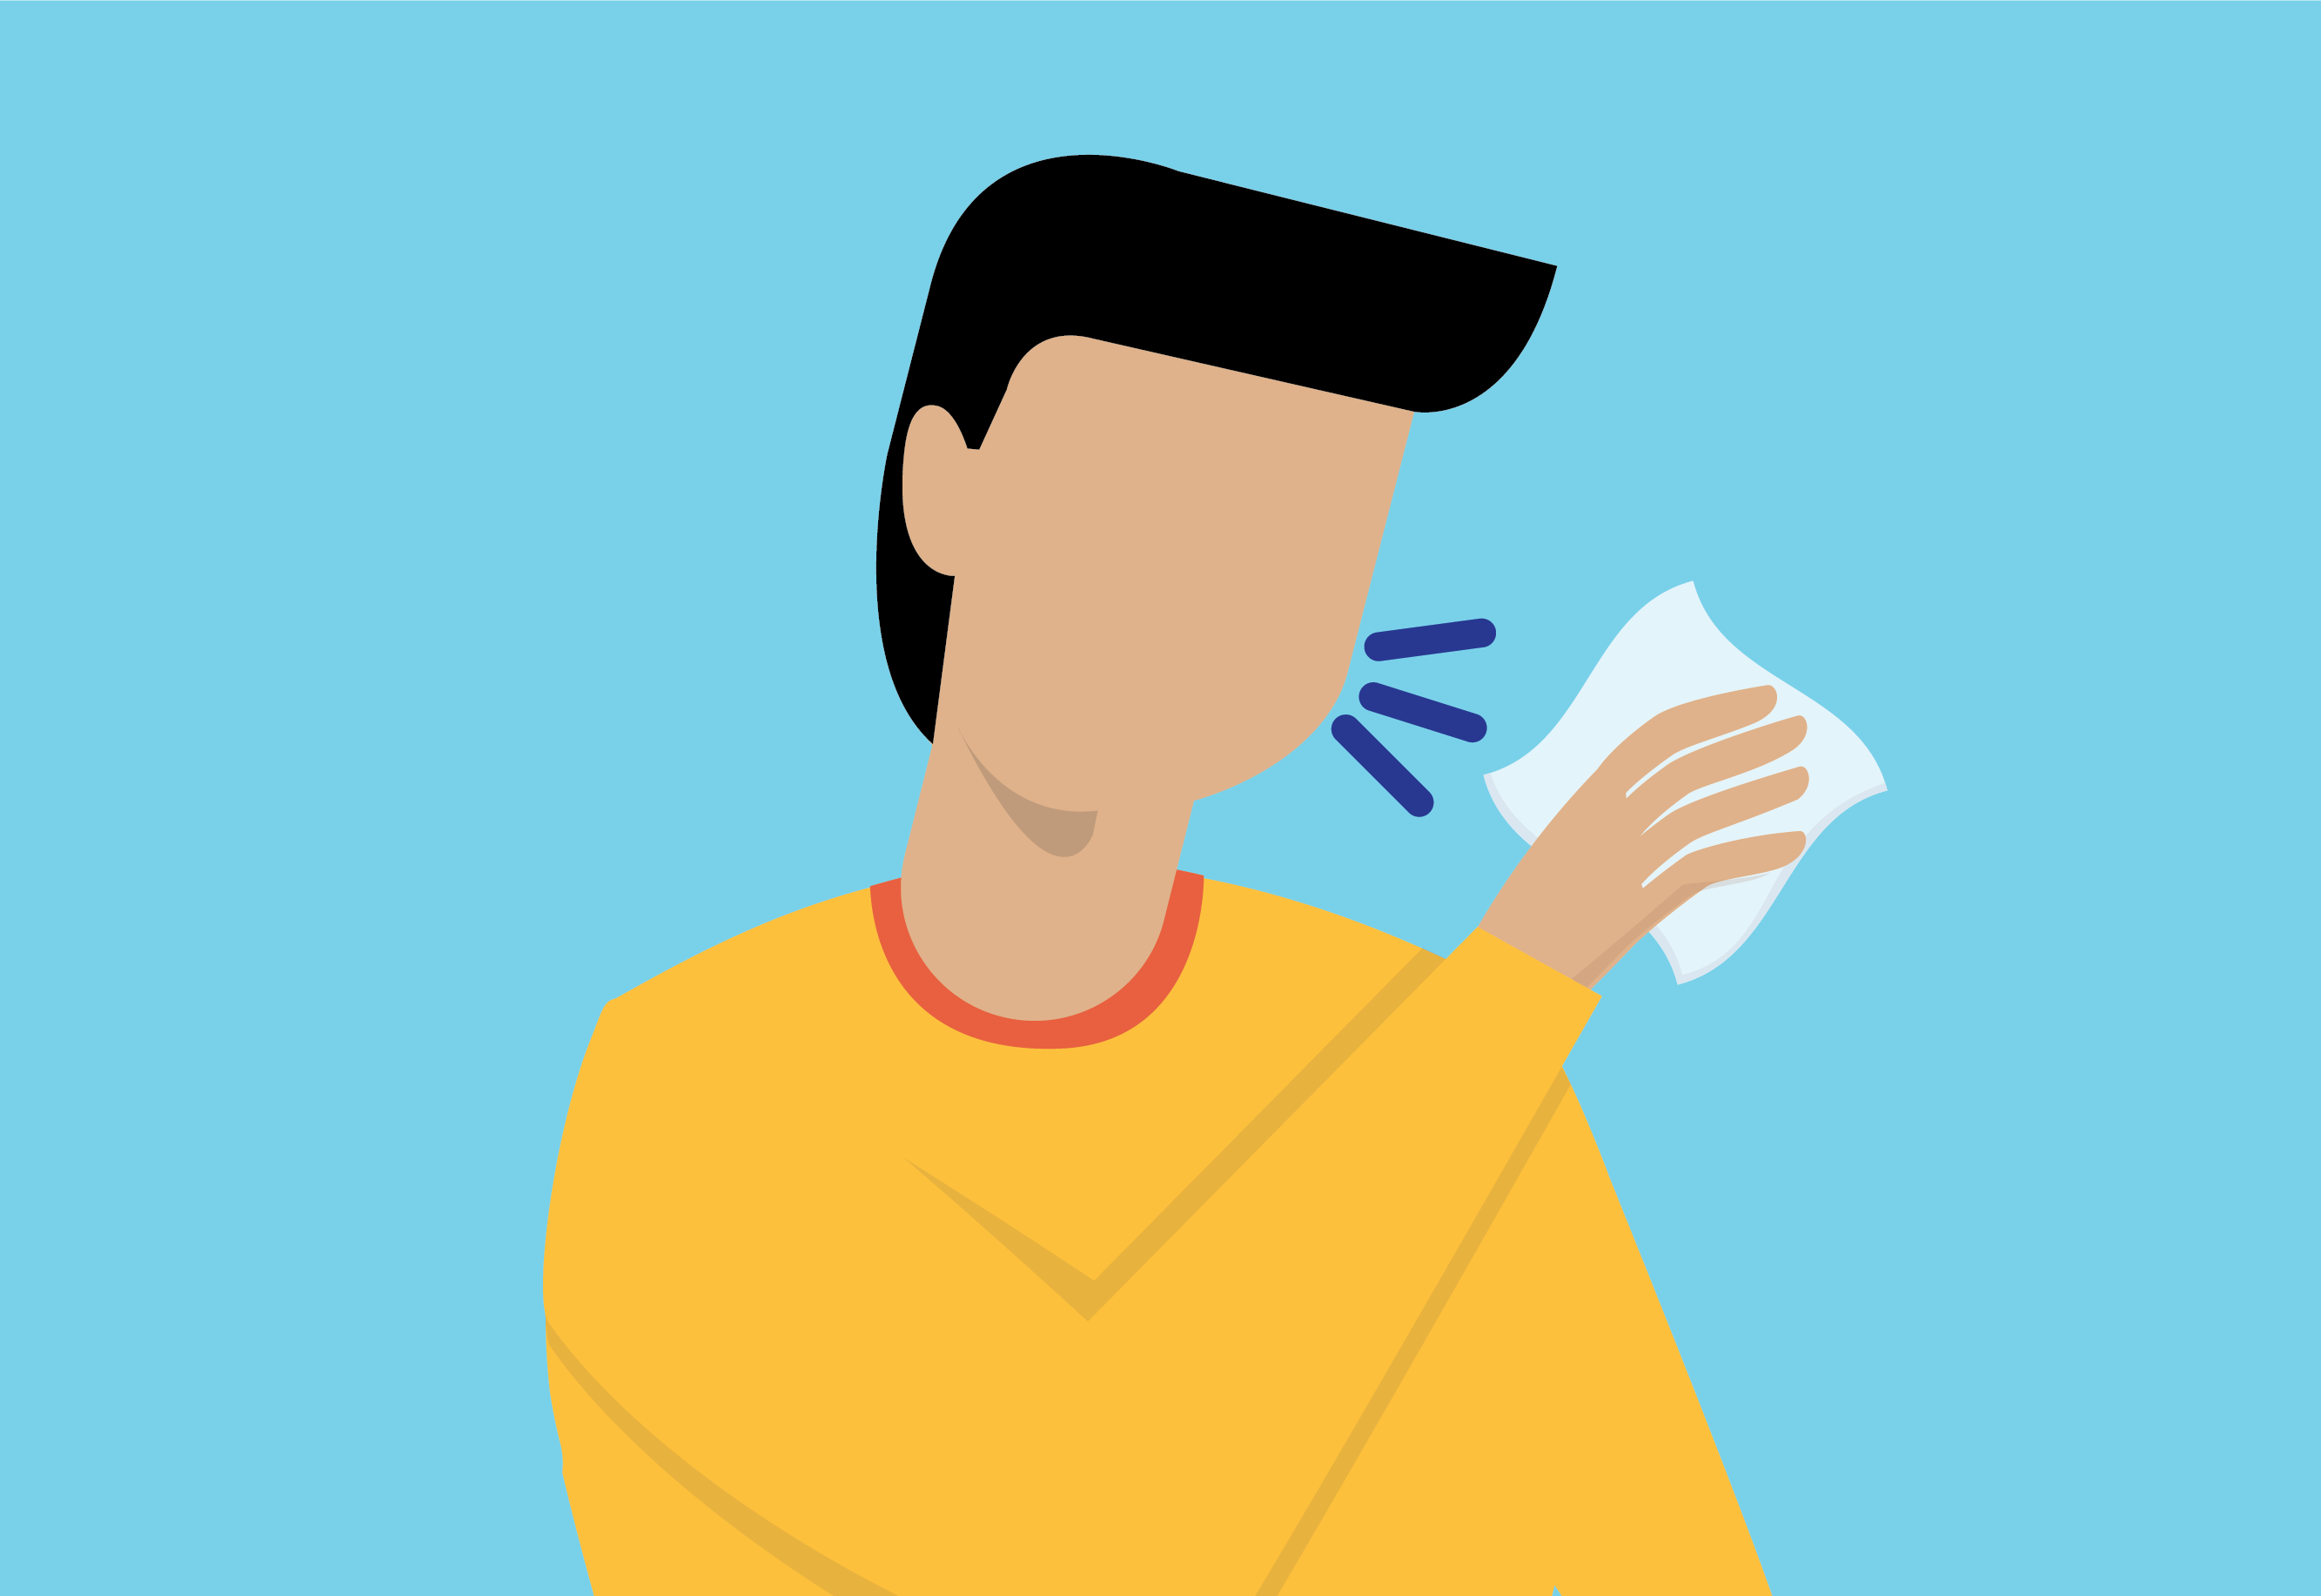 illustration of a man coughing into a tissue